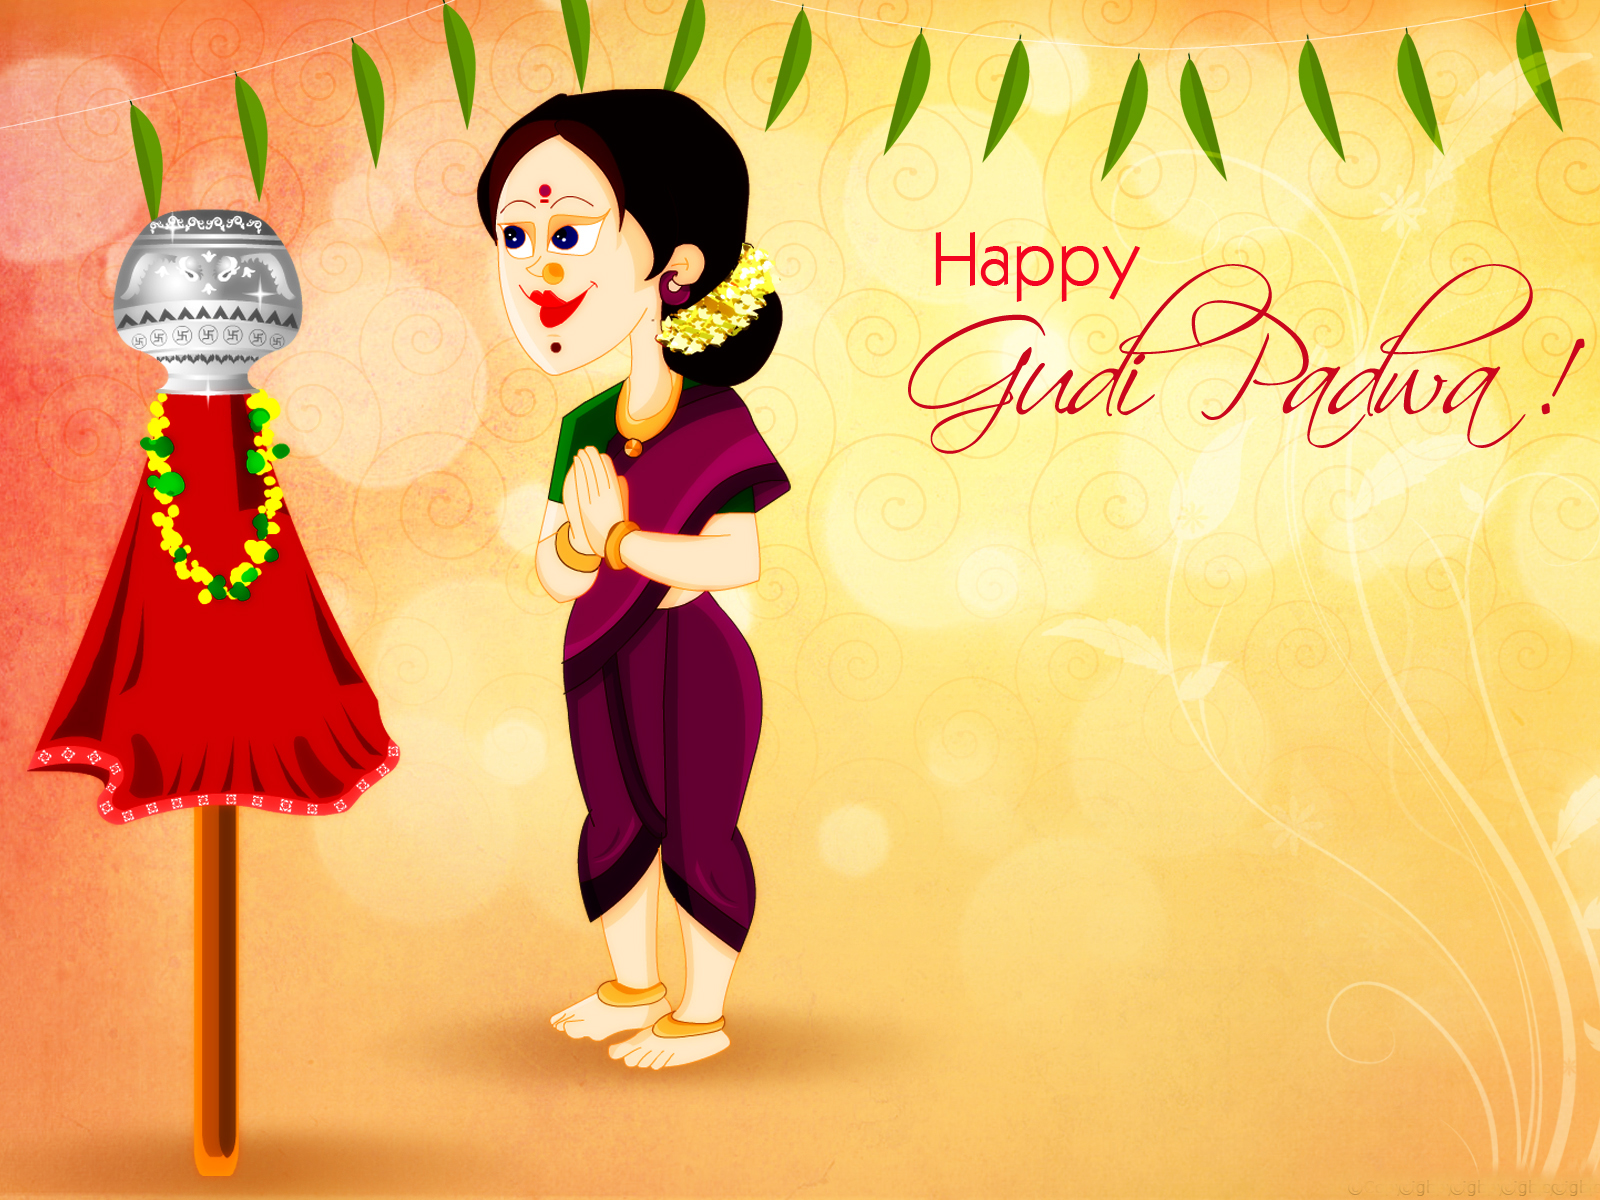 32 Gudi Padwa Captions English & Marathi!